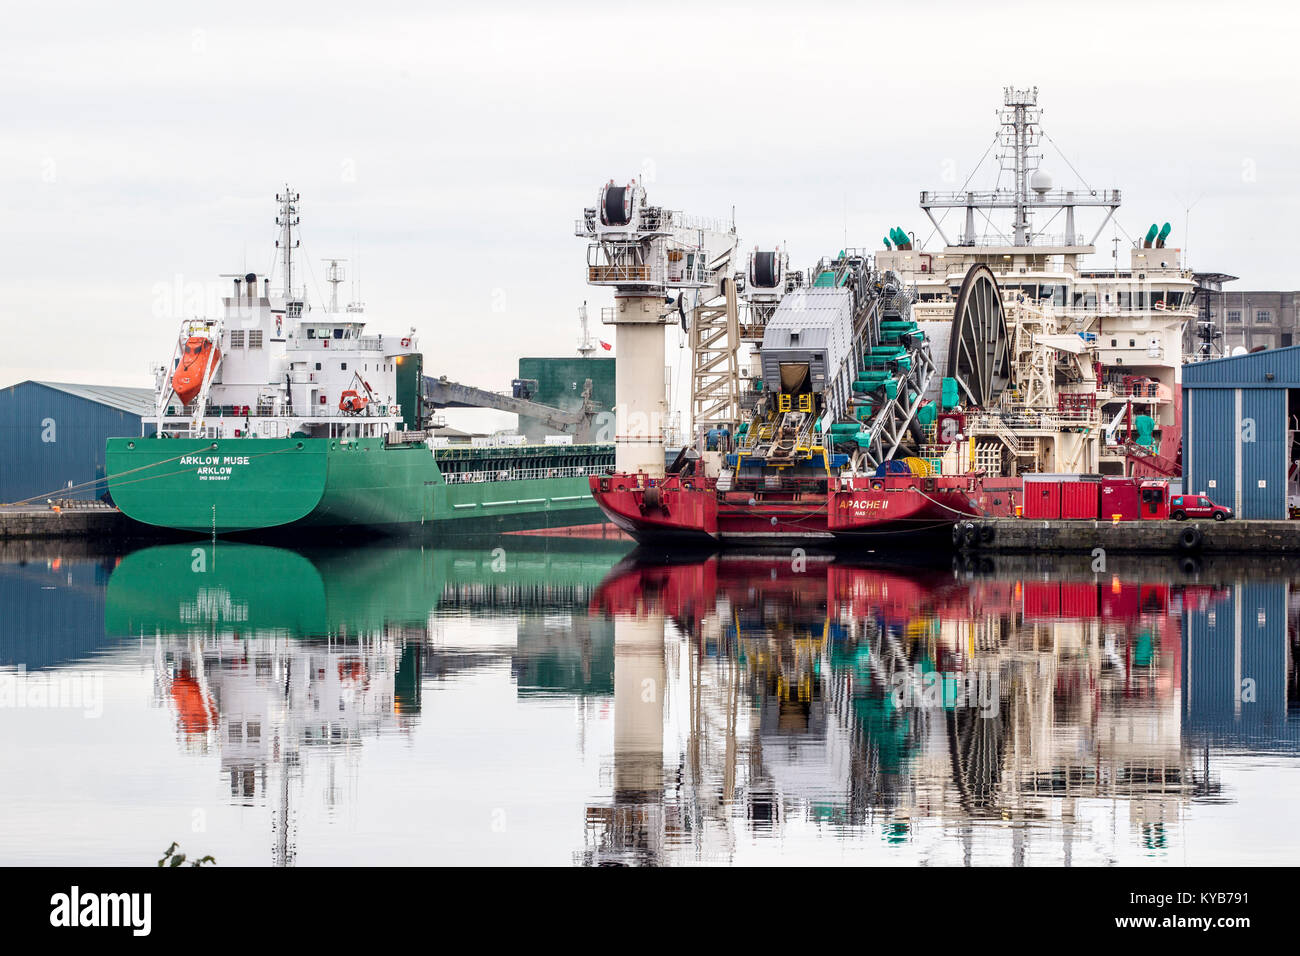 Leith Docks Edinburgh with various ships in dock - Stock Image